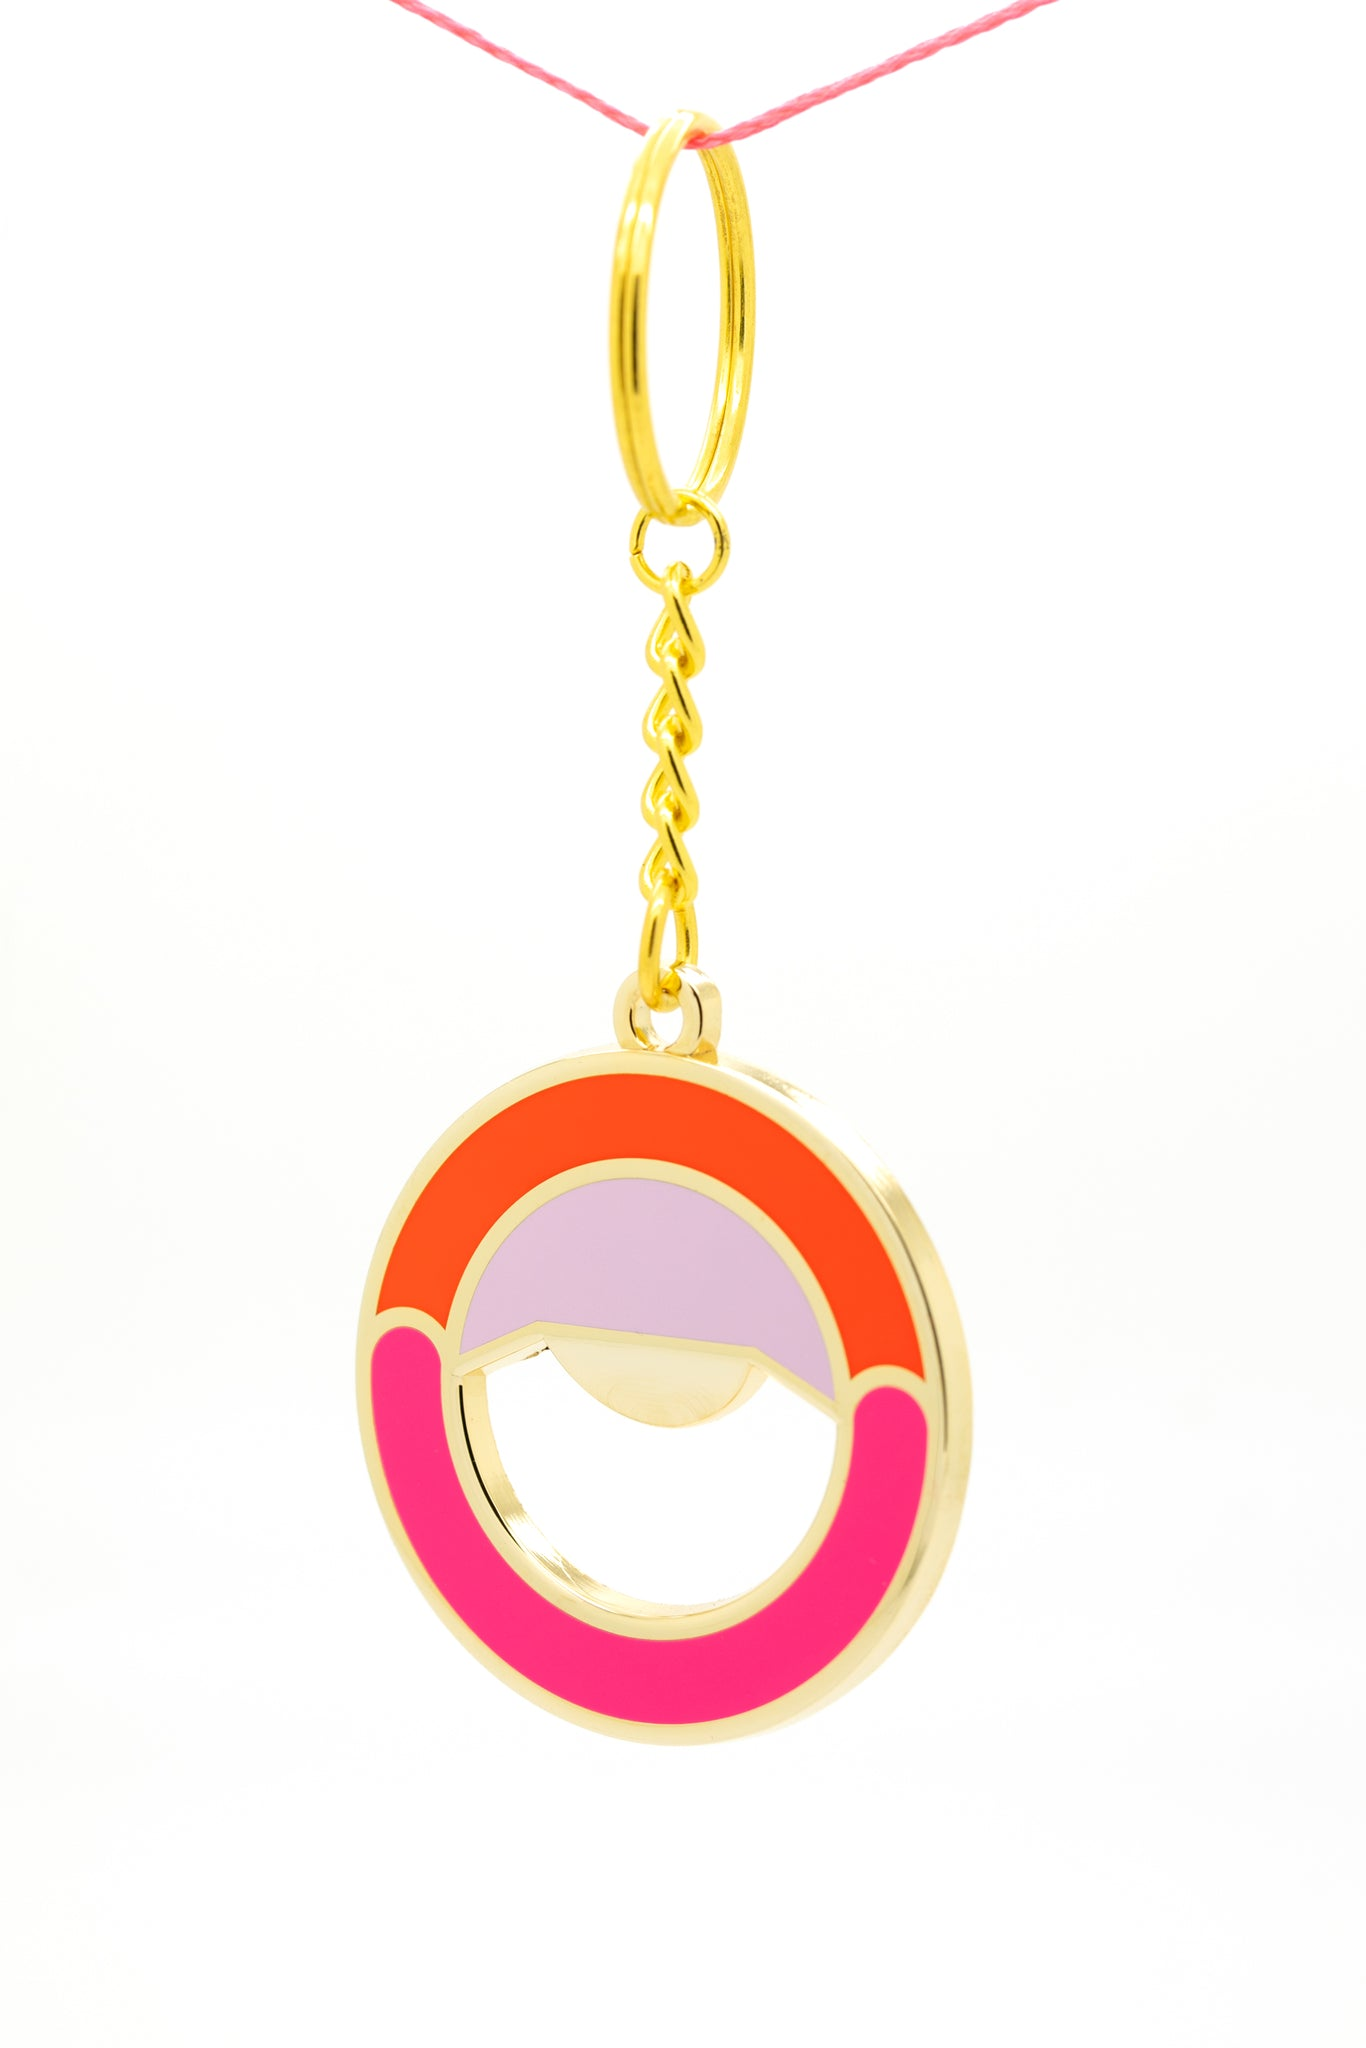 Geo - Nov19 - Bottle Opener Keychain